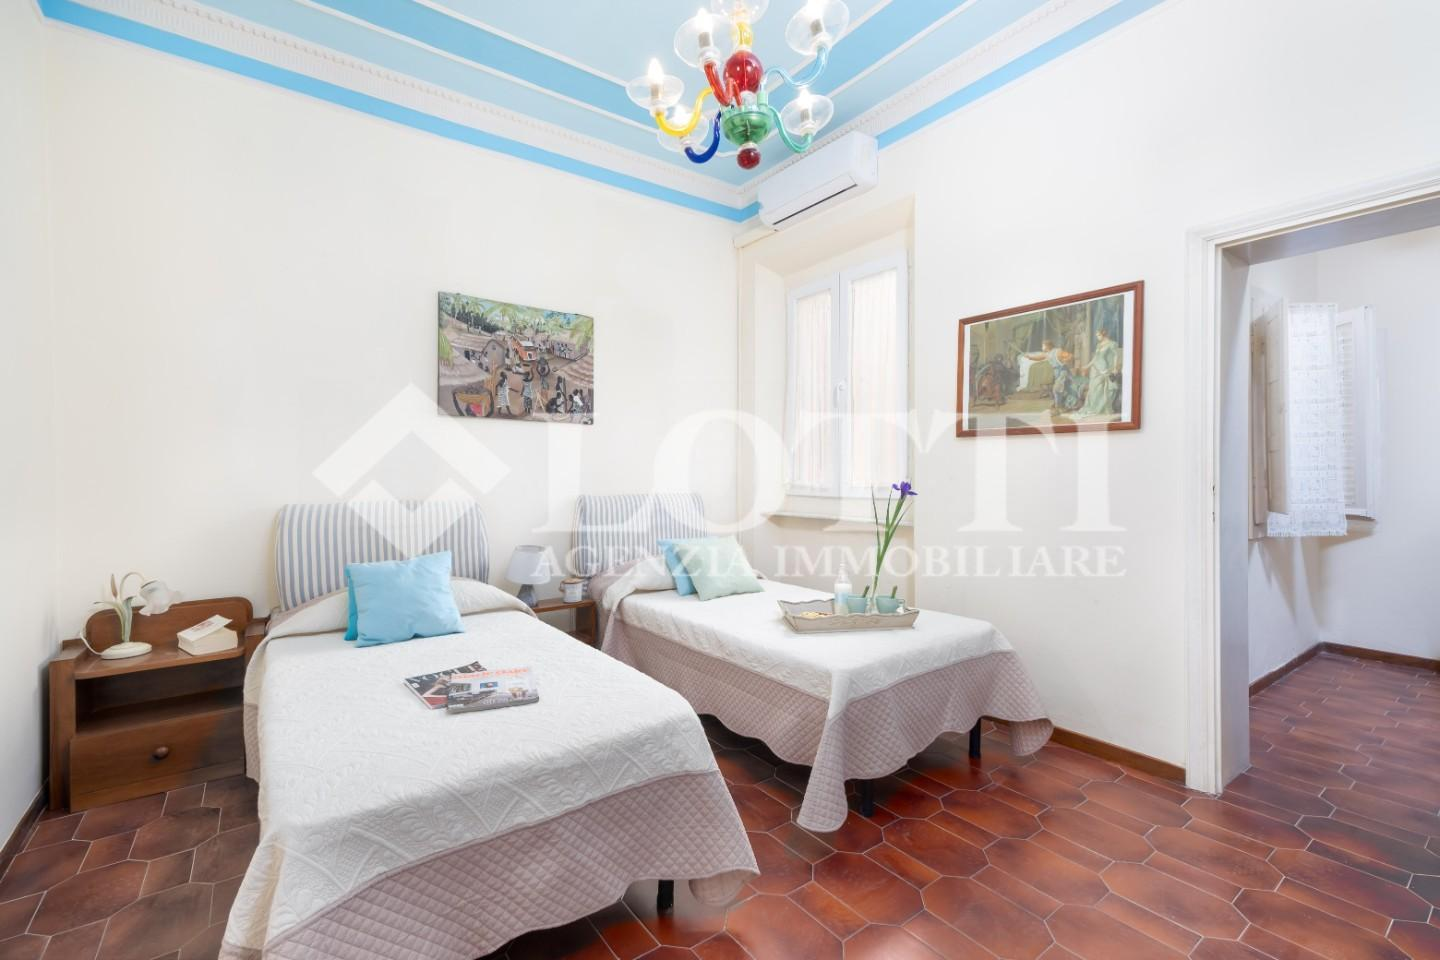 Townhouses for sale, ref. 701